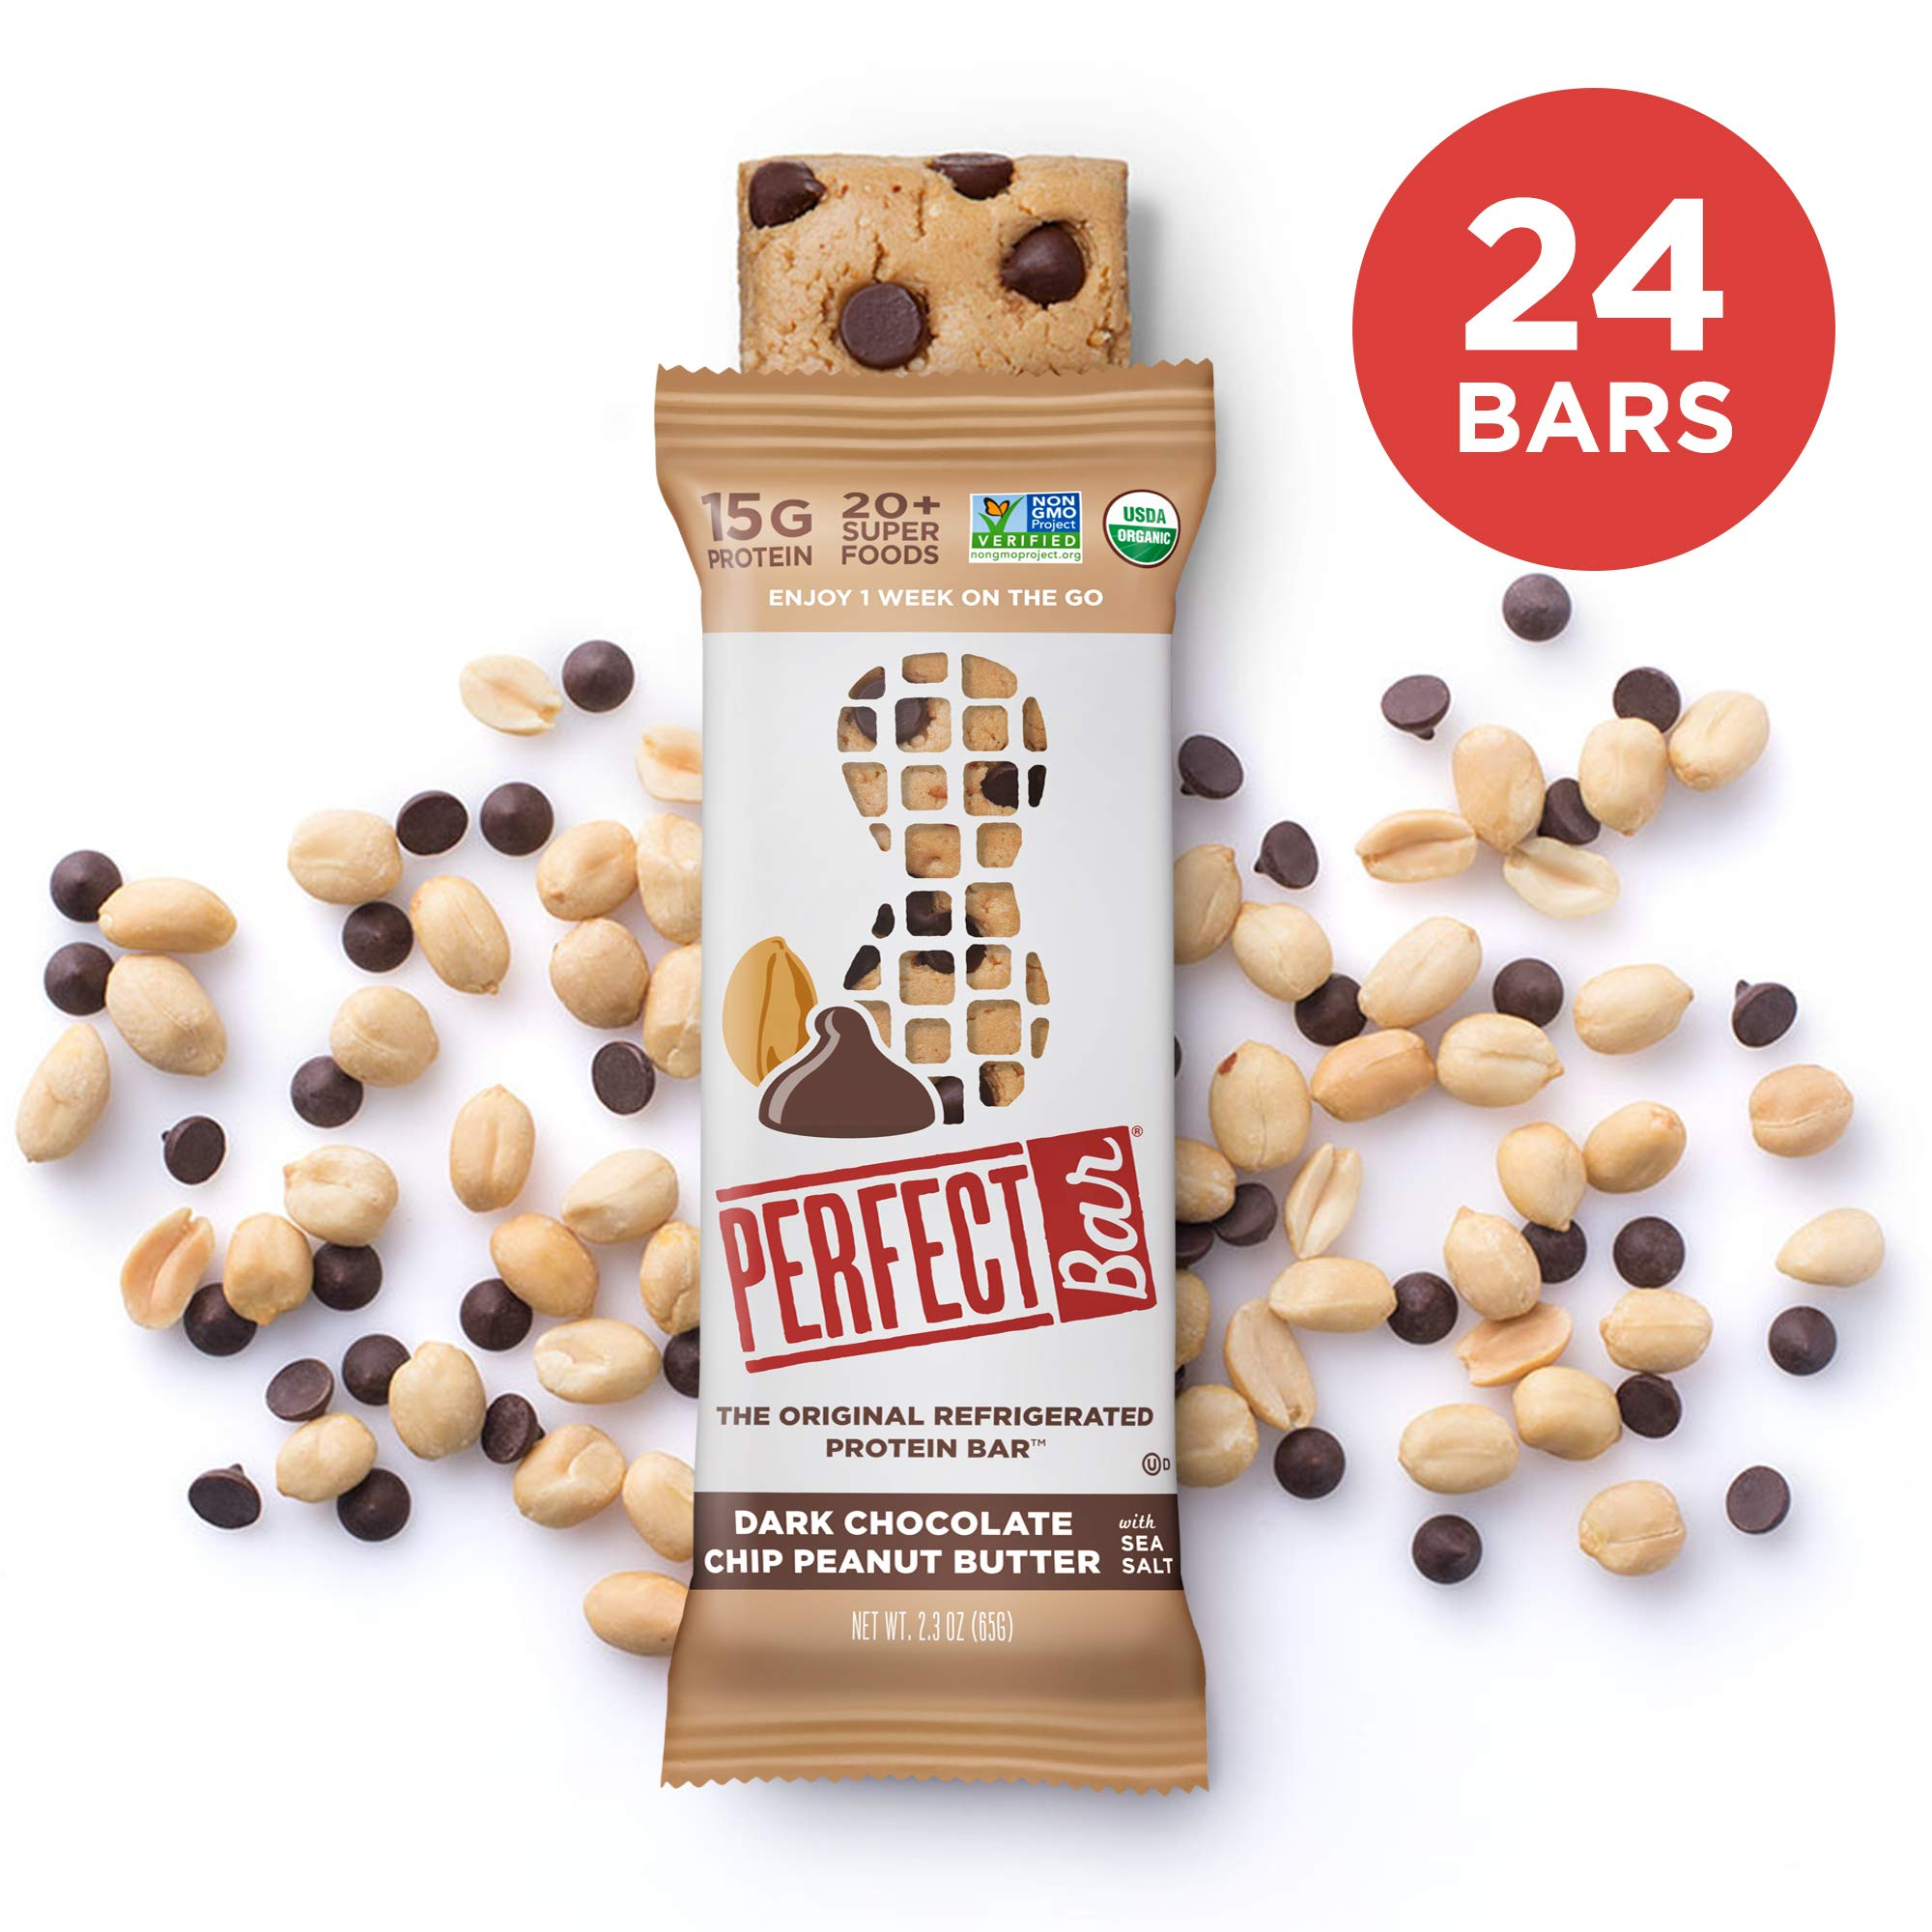 Perfect Bar Original Refrigerated Protein Bar, Dark Chocolate Chip Peanut Butter, 15g Whole Food Protein, Gluten Free, Organic and Non-GMO, 2.3 Oz. Bar (24 Bars) by Perfect Bar (Image #1)